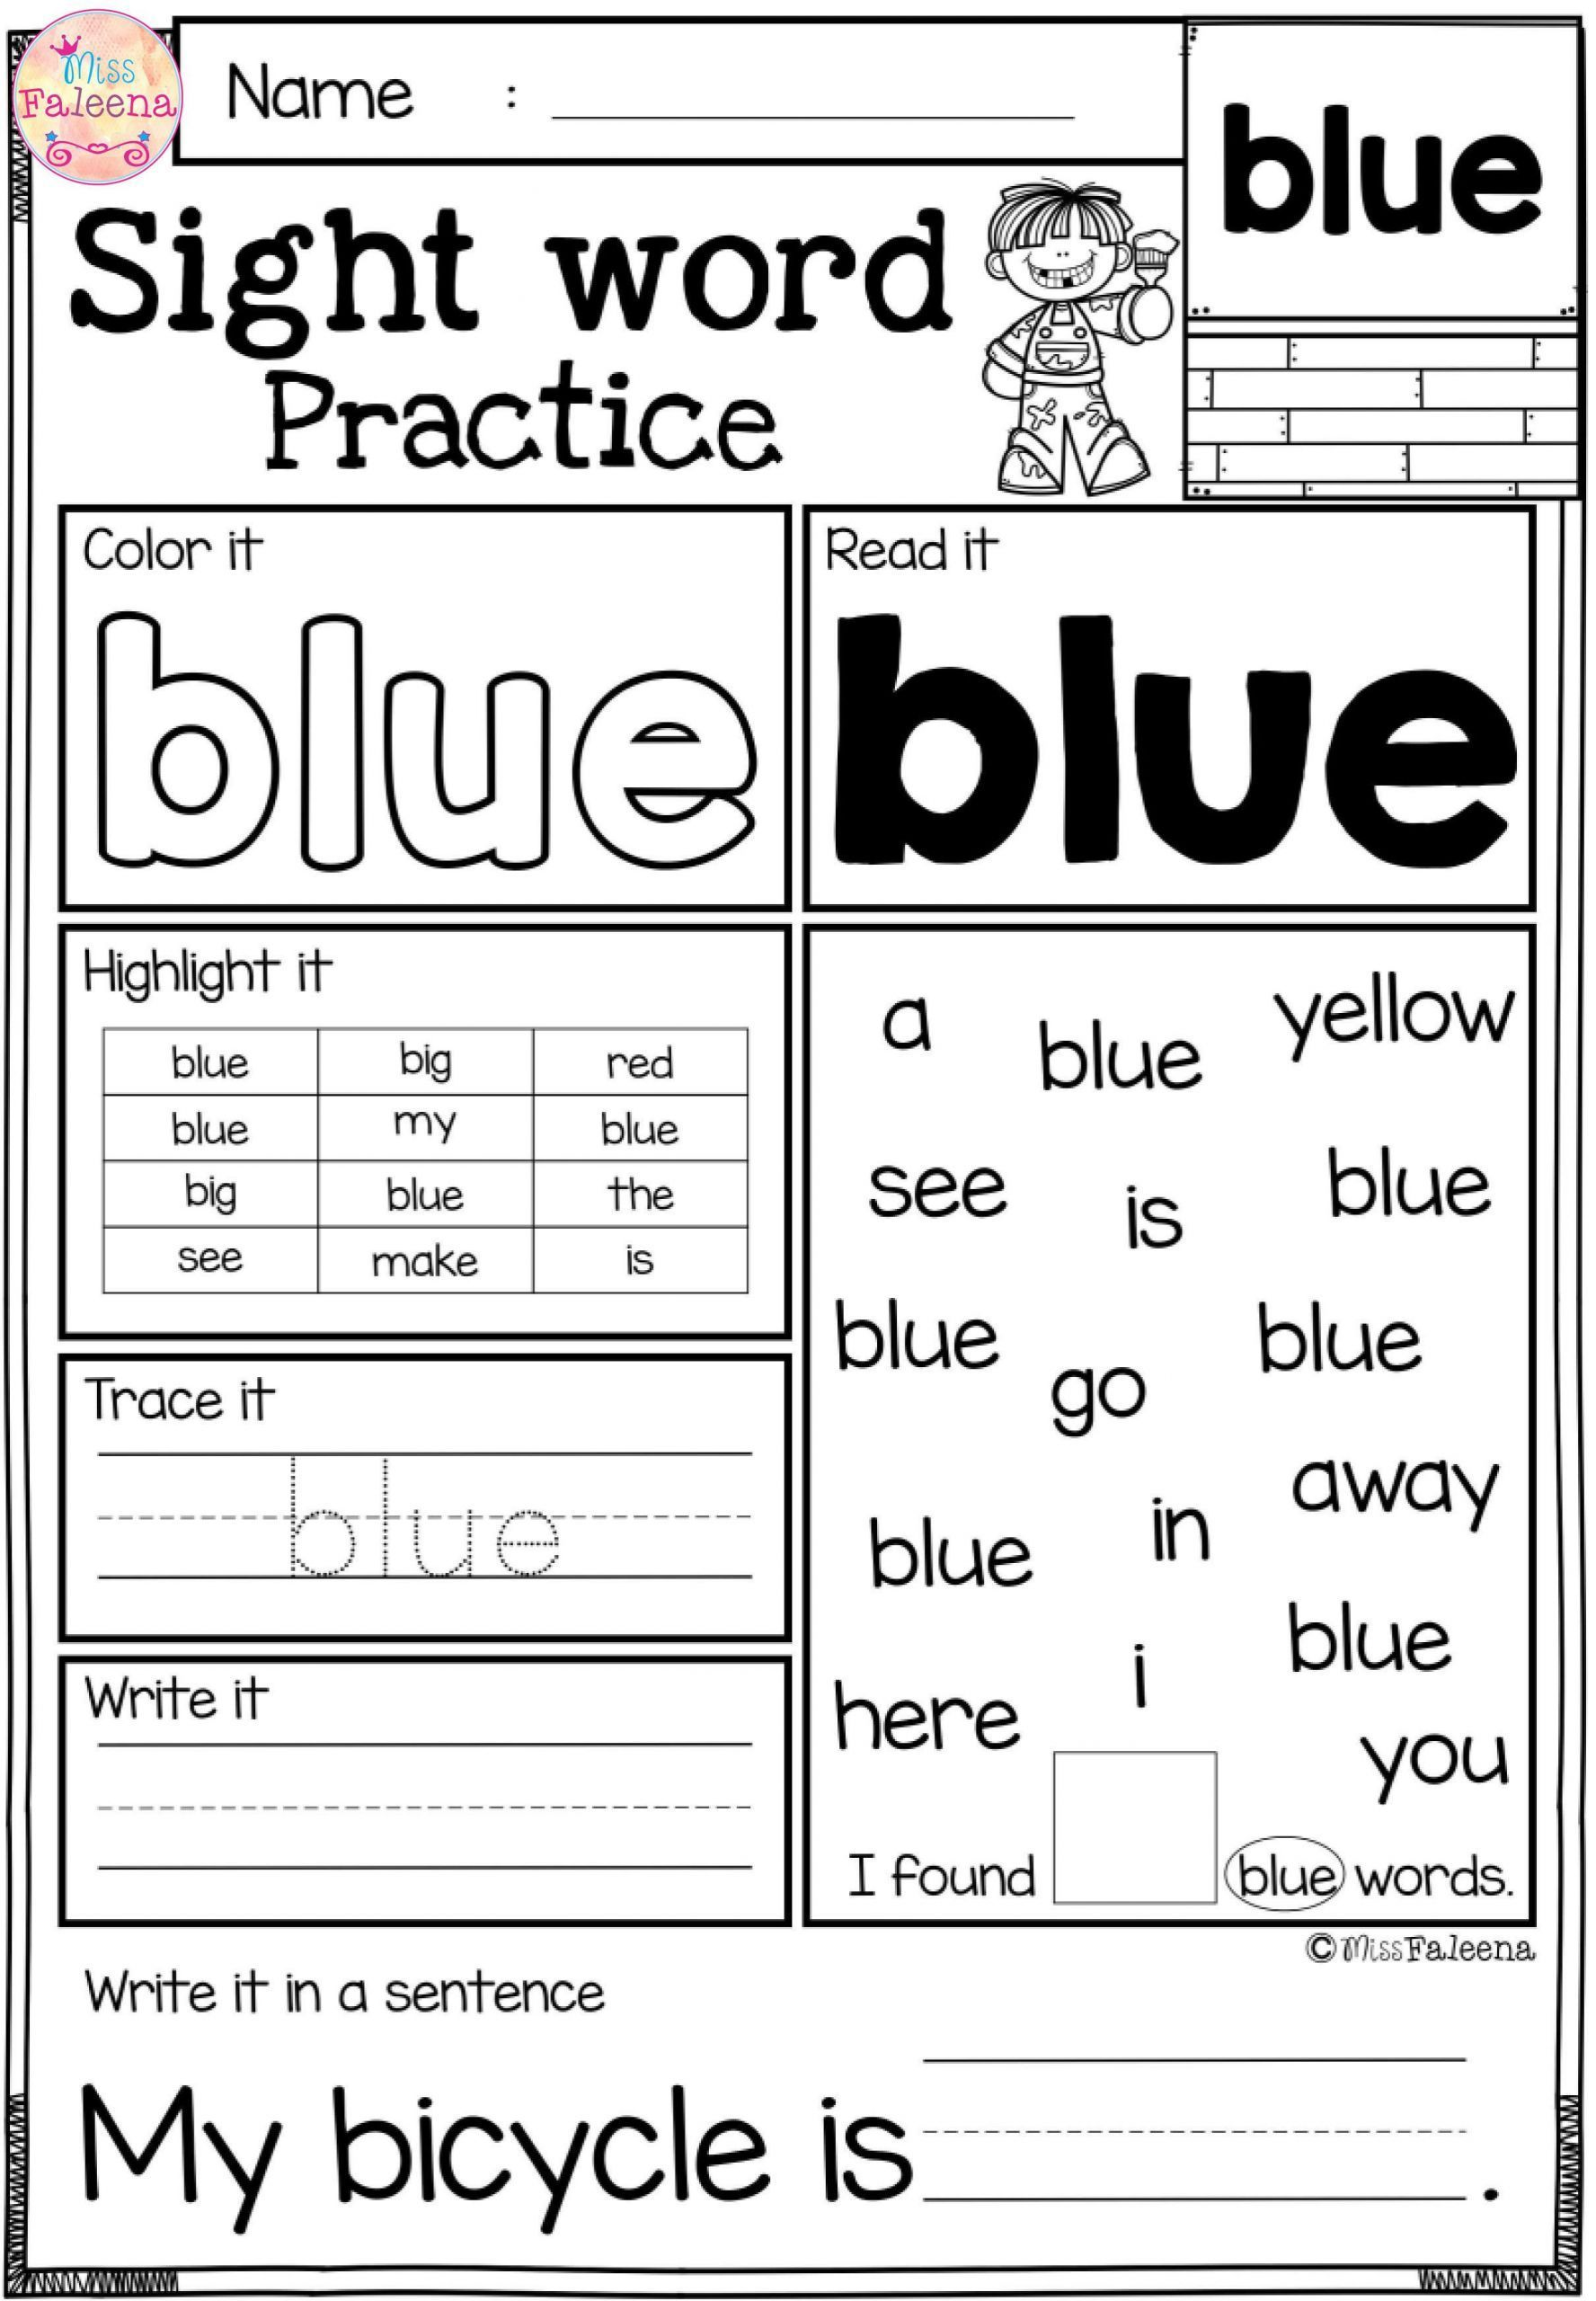 2 Count By 4s Worksheet Free Sight Word Practice Count